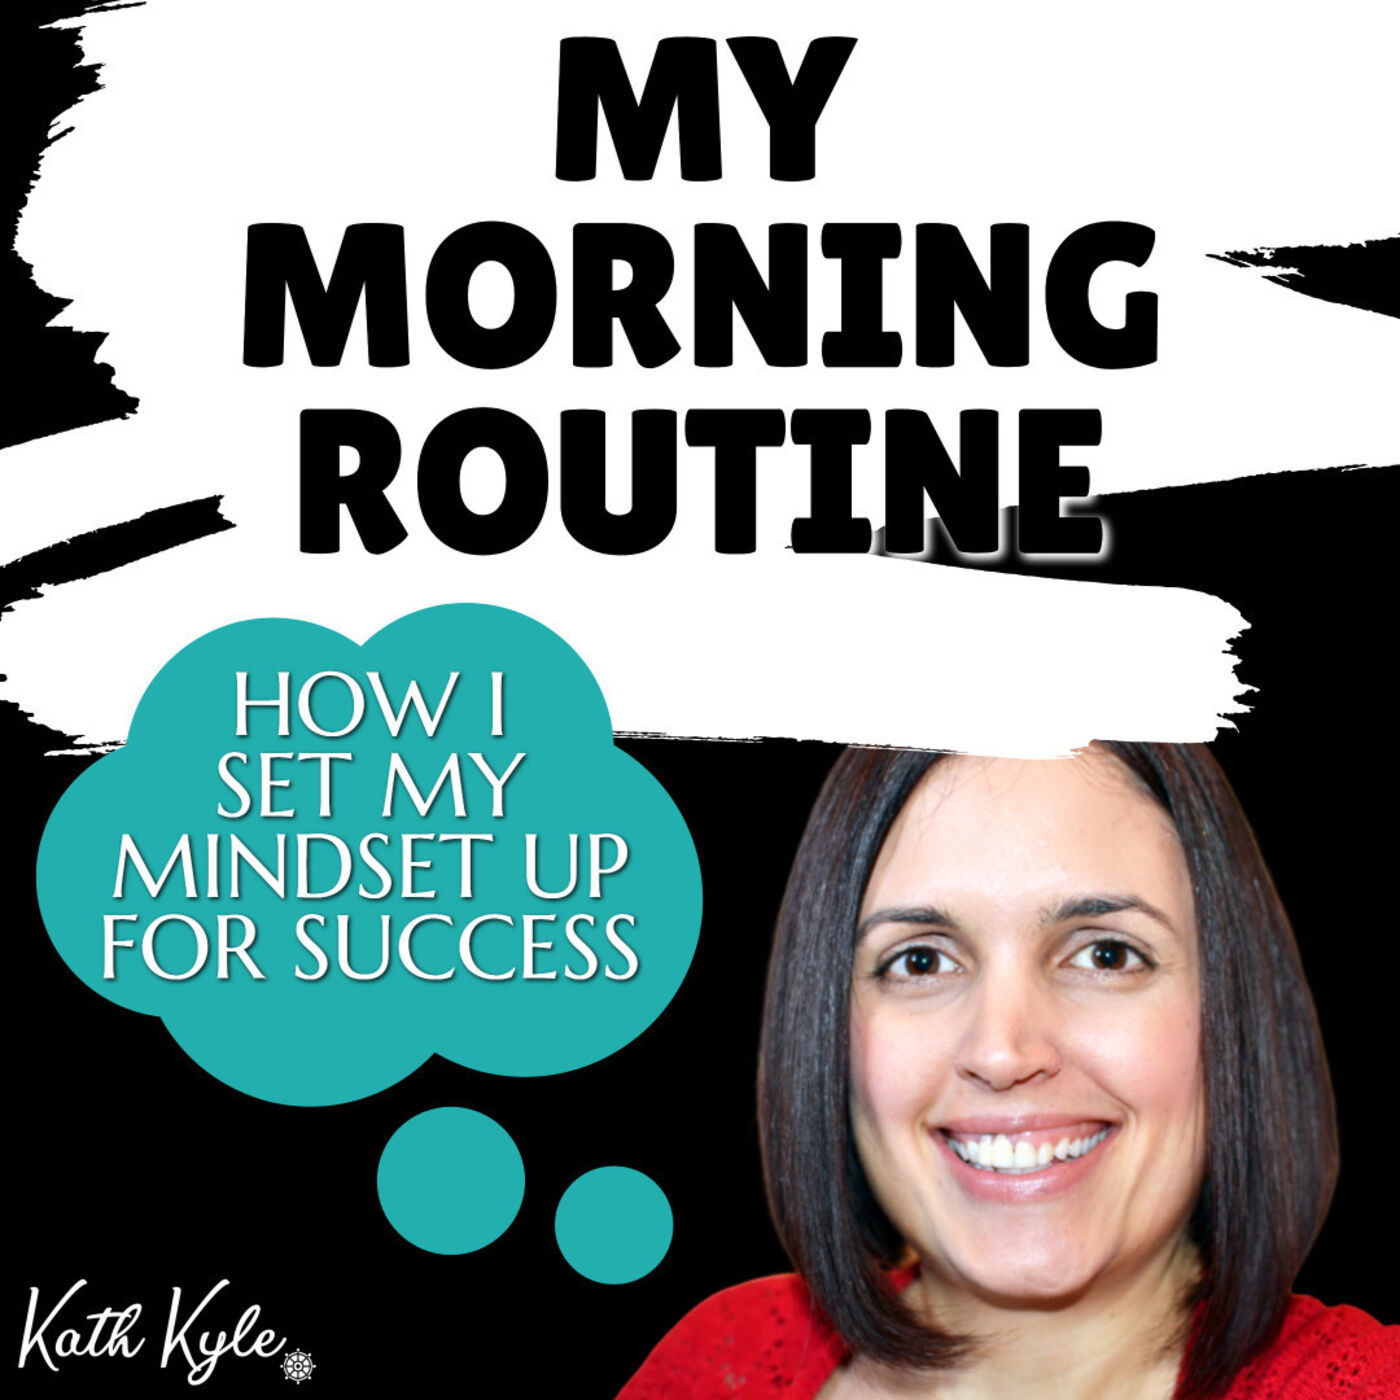 My Morning Routine: How I Set My Mindset Up For Success